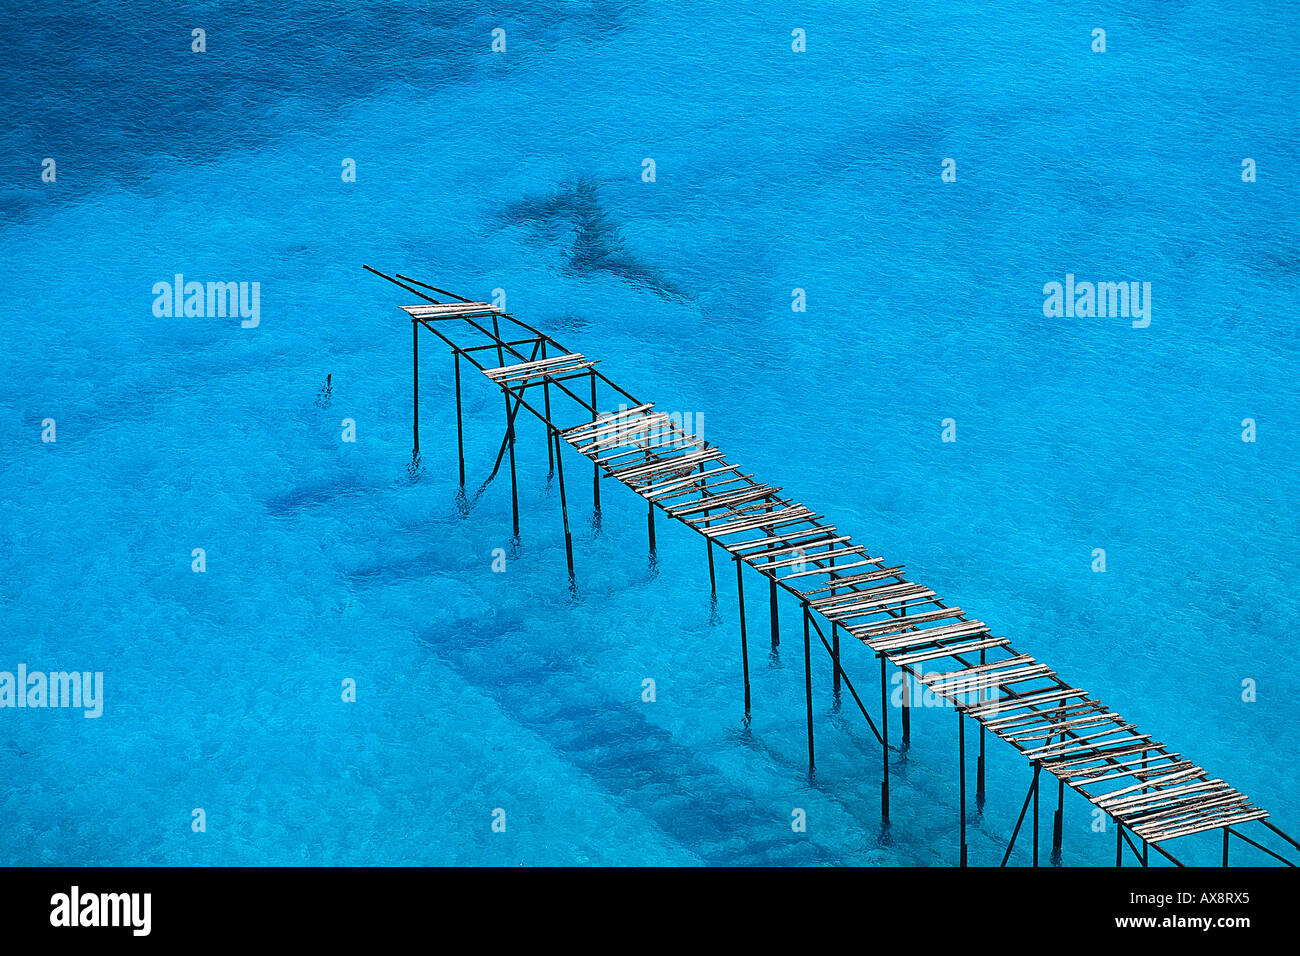 Broken wooden jetty near Porticello, Lipari Island, Aeolian Islands, Italy Stock Photo